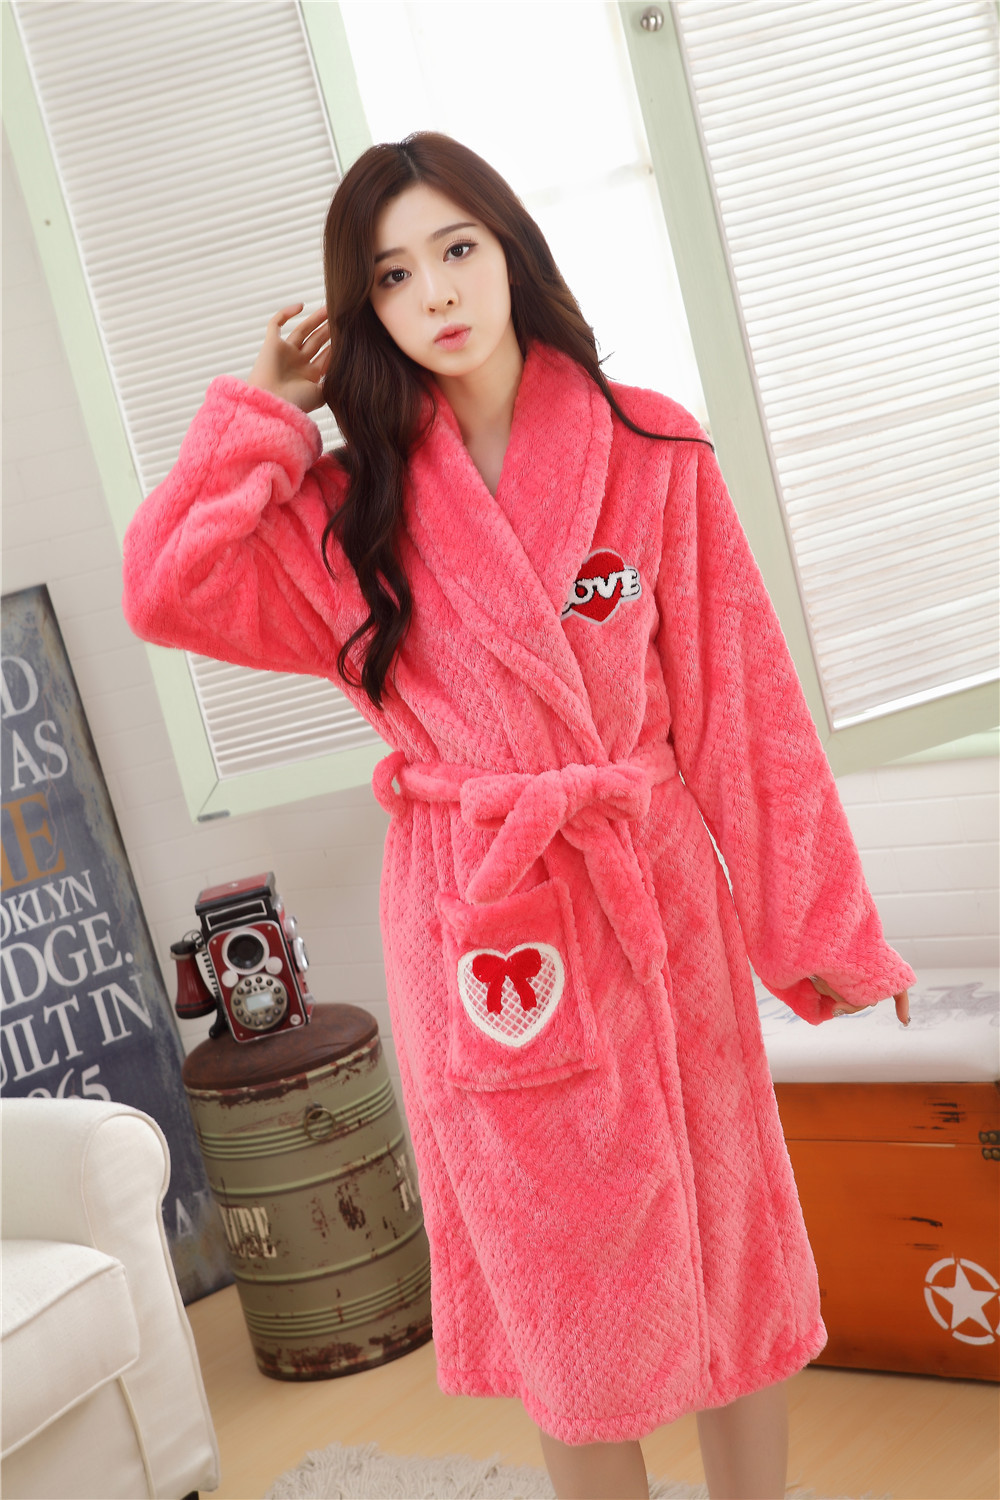 31eacbca1d Autumn winter nightgowns female casual flannel thick bathrobes for women  long sleeve ladies warm sleepwear robes homewear A457-in Robes from Women s  ...